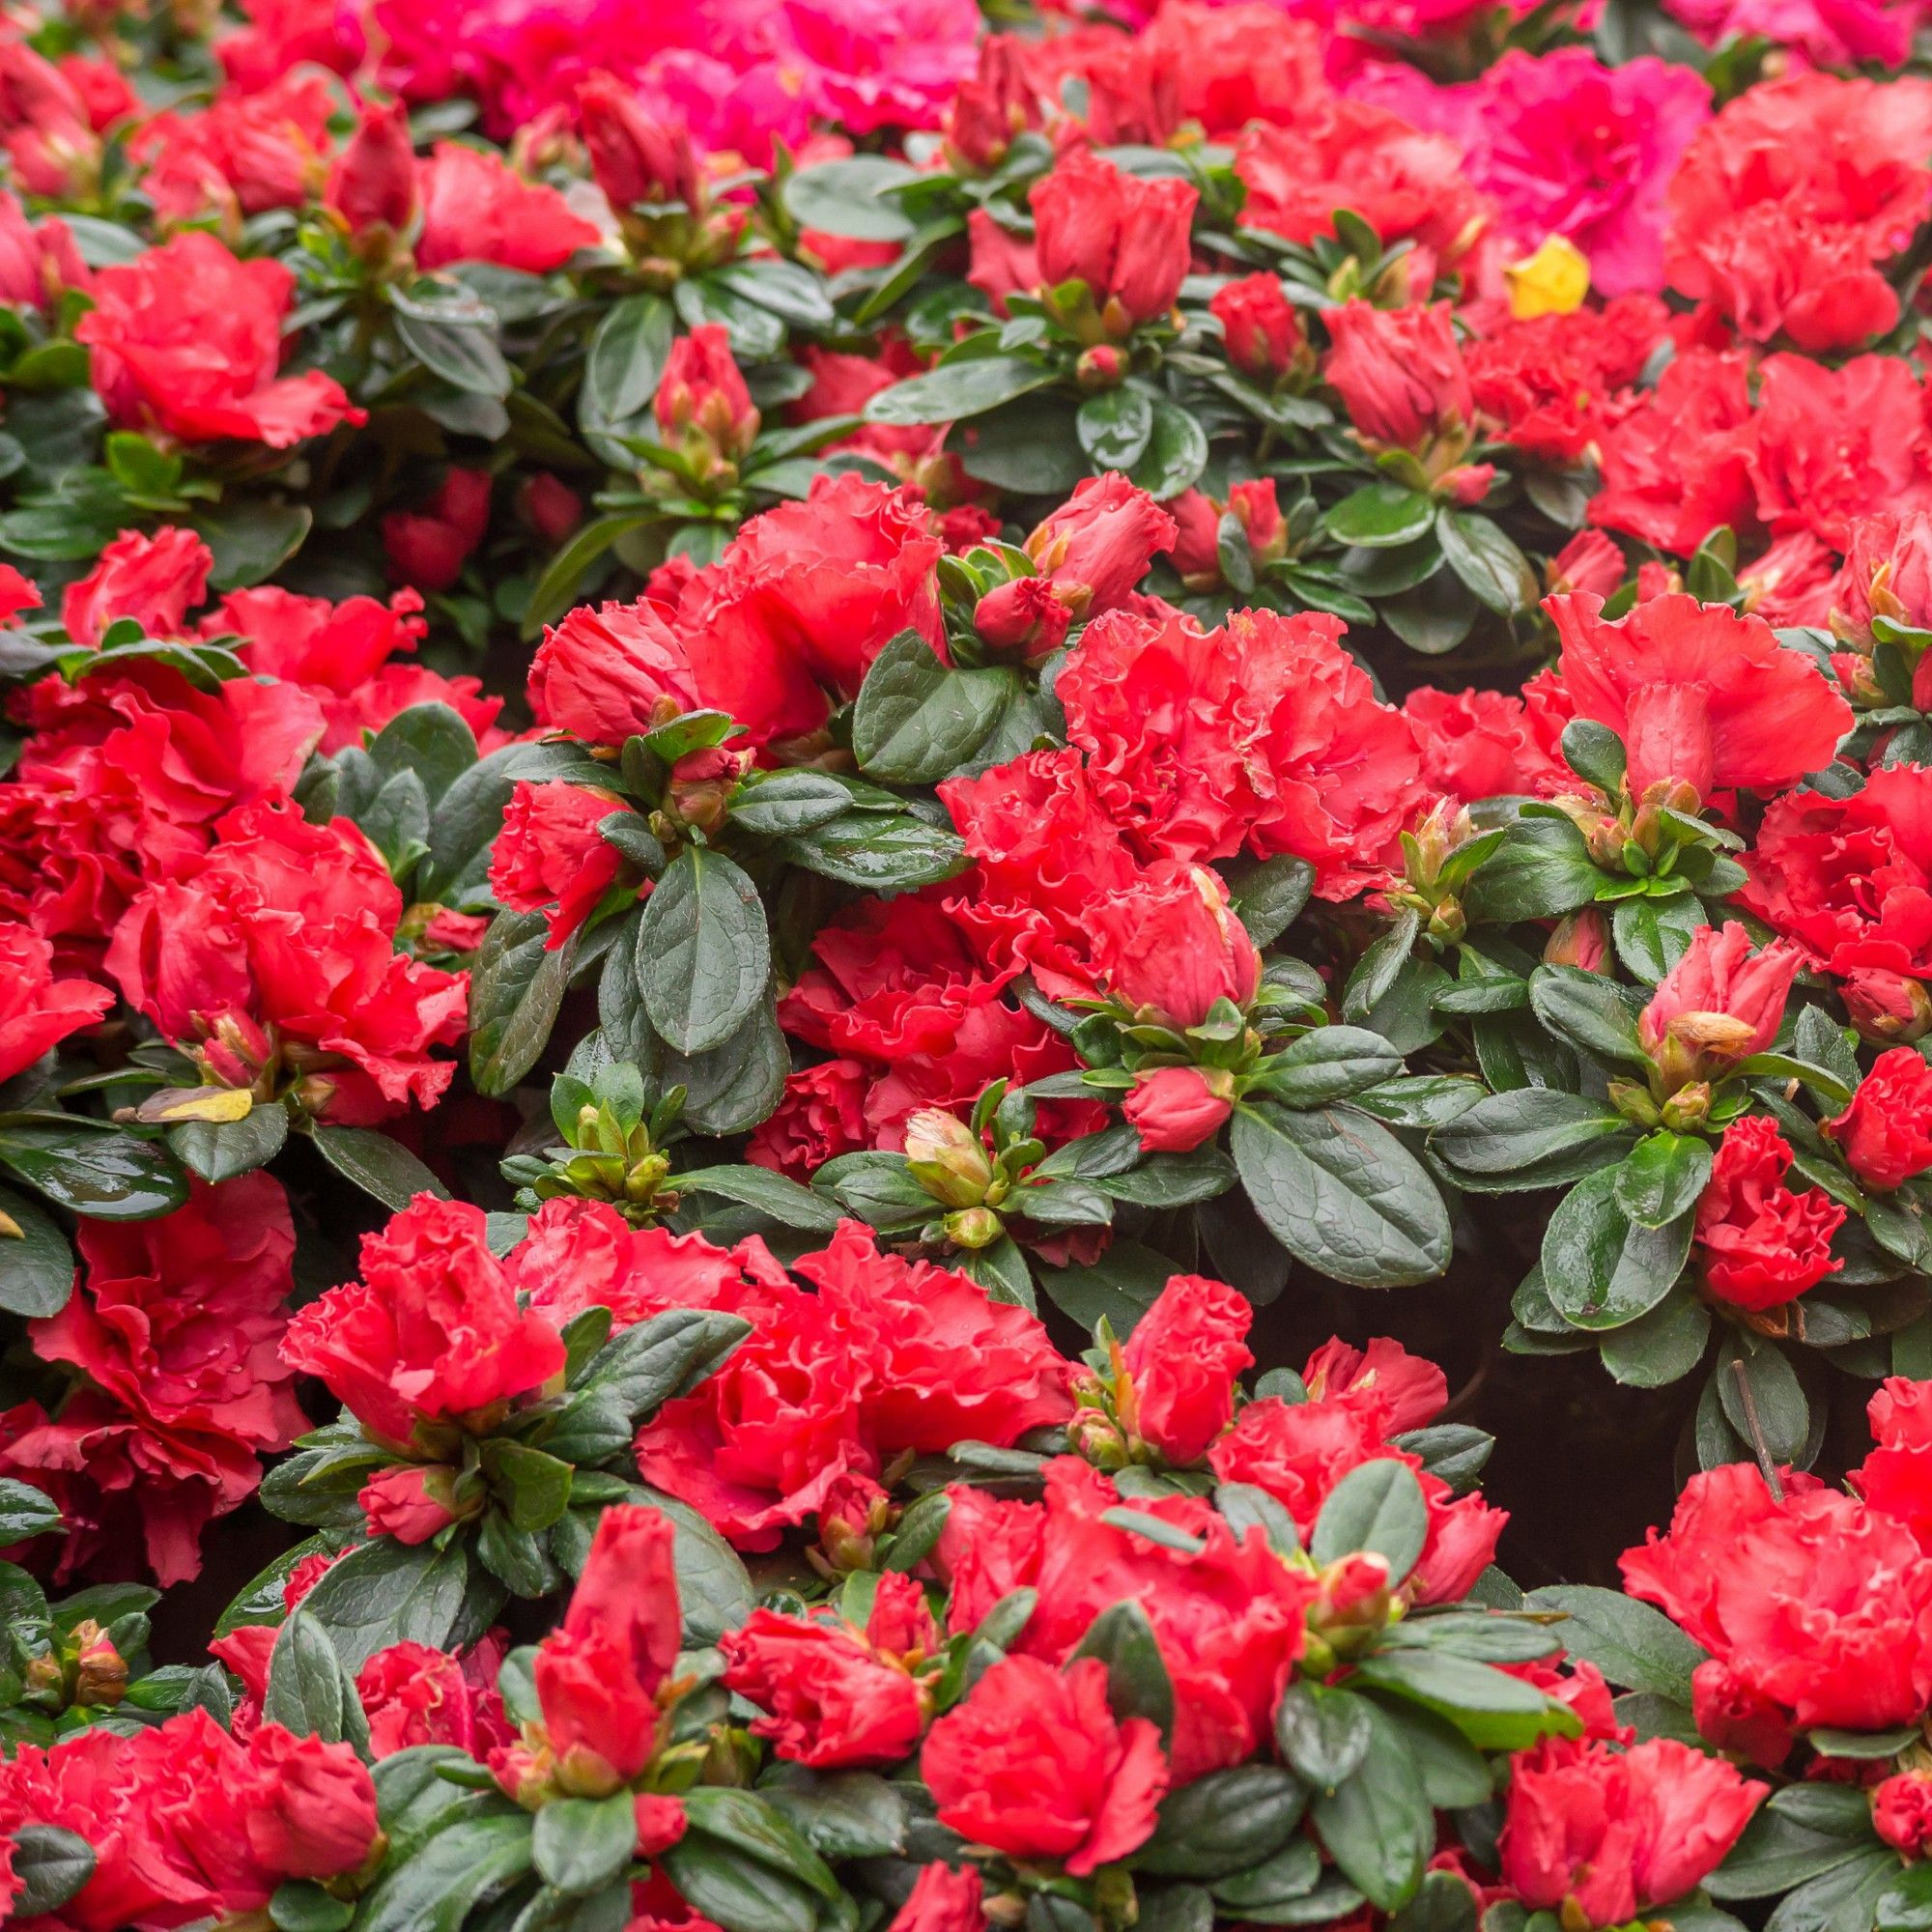 Encore Azalea Autumn Bonfire 3gal U S D A Hardiness Zones 6 10 1pc National Plant Network Small Garden Containers Flower Pots Garden Shrubs